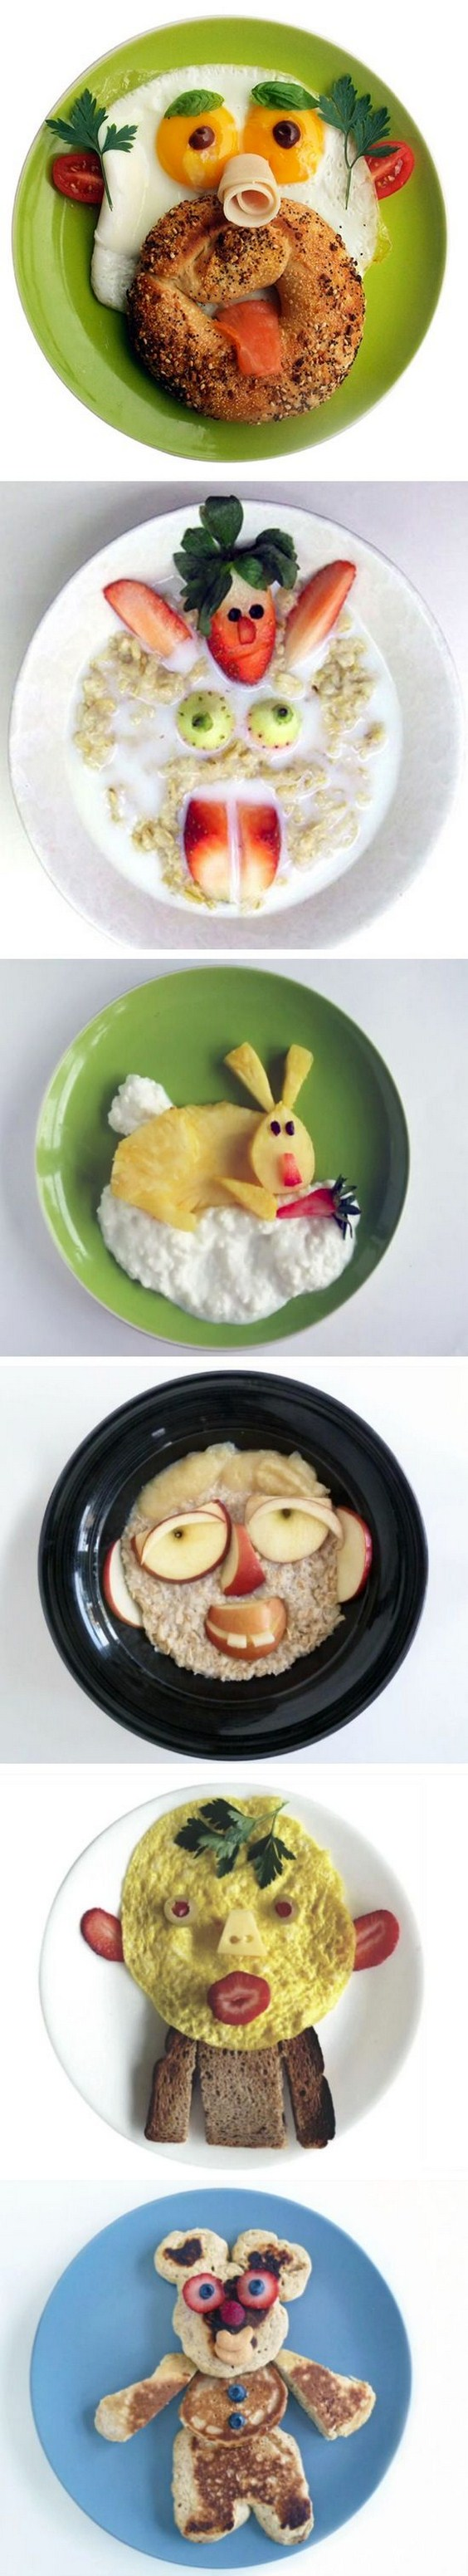 Creative_Food_Ideass_06